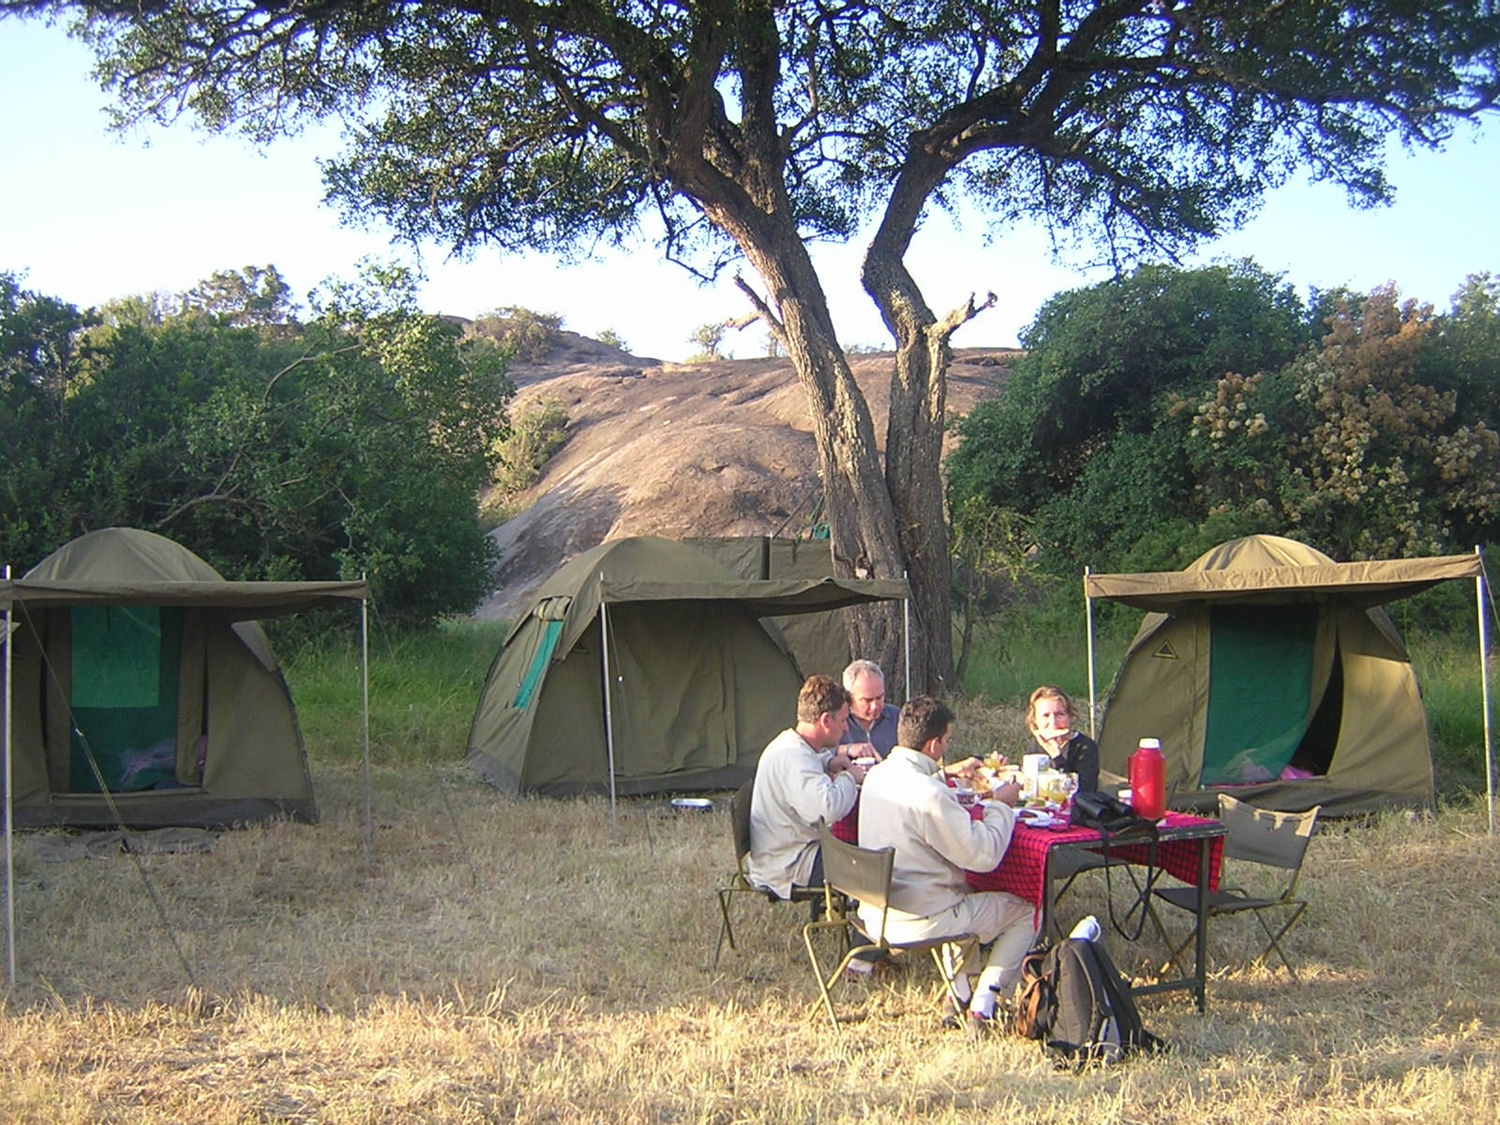 camping Tanzania safari Christmas offer